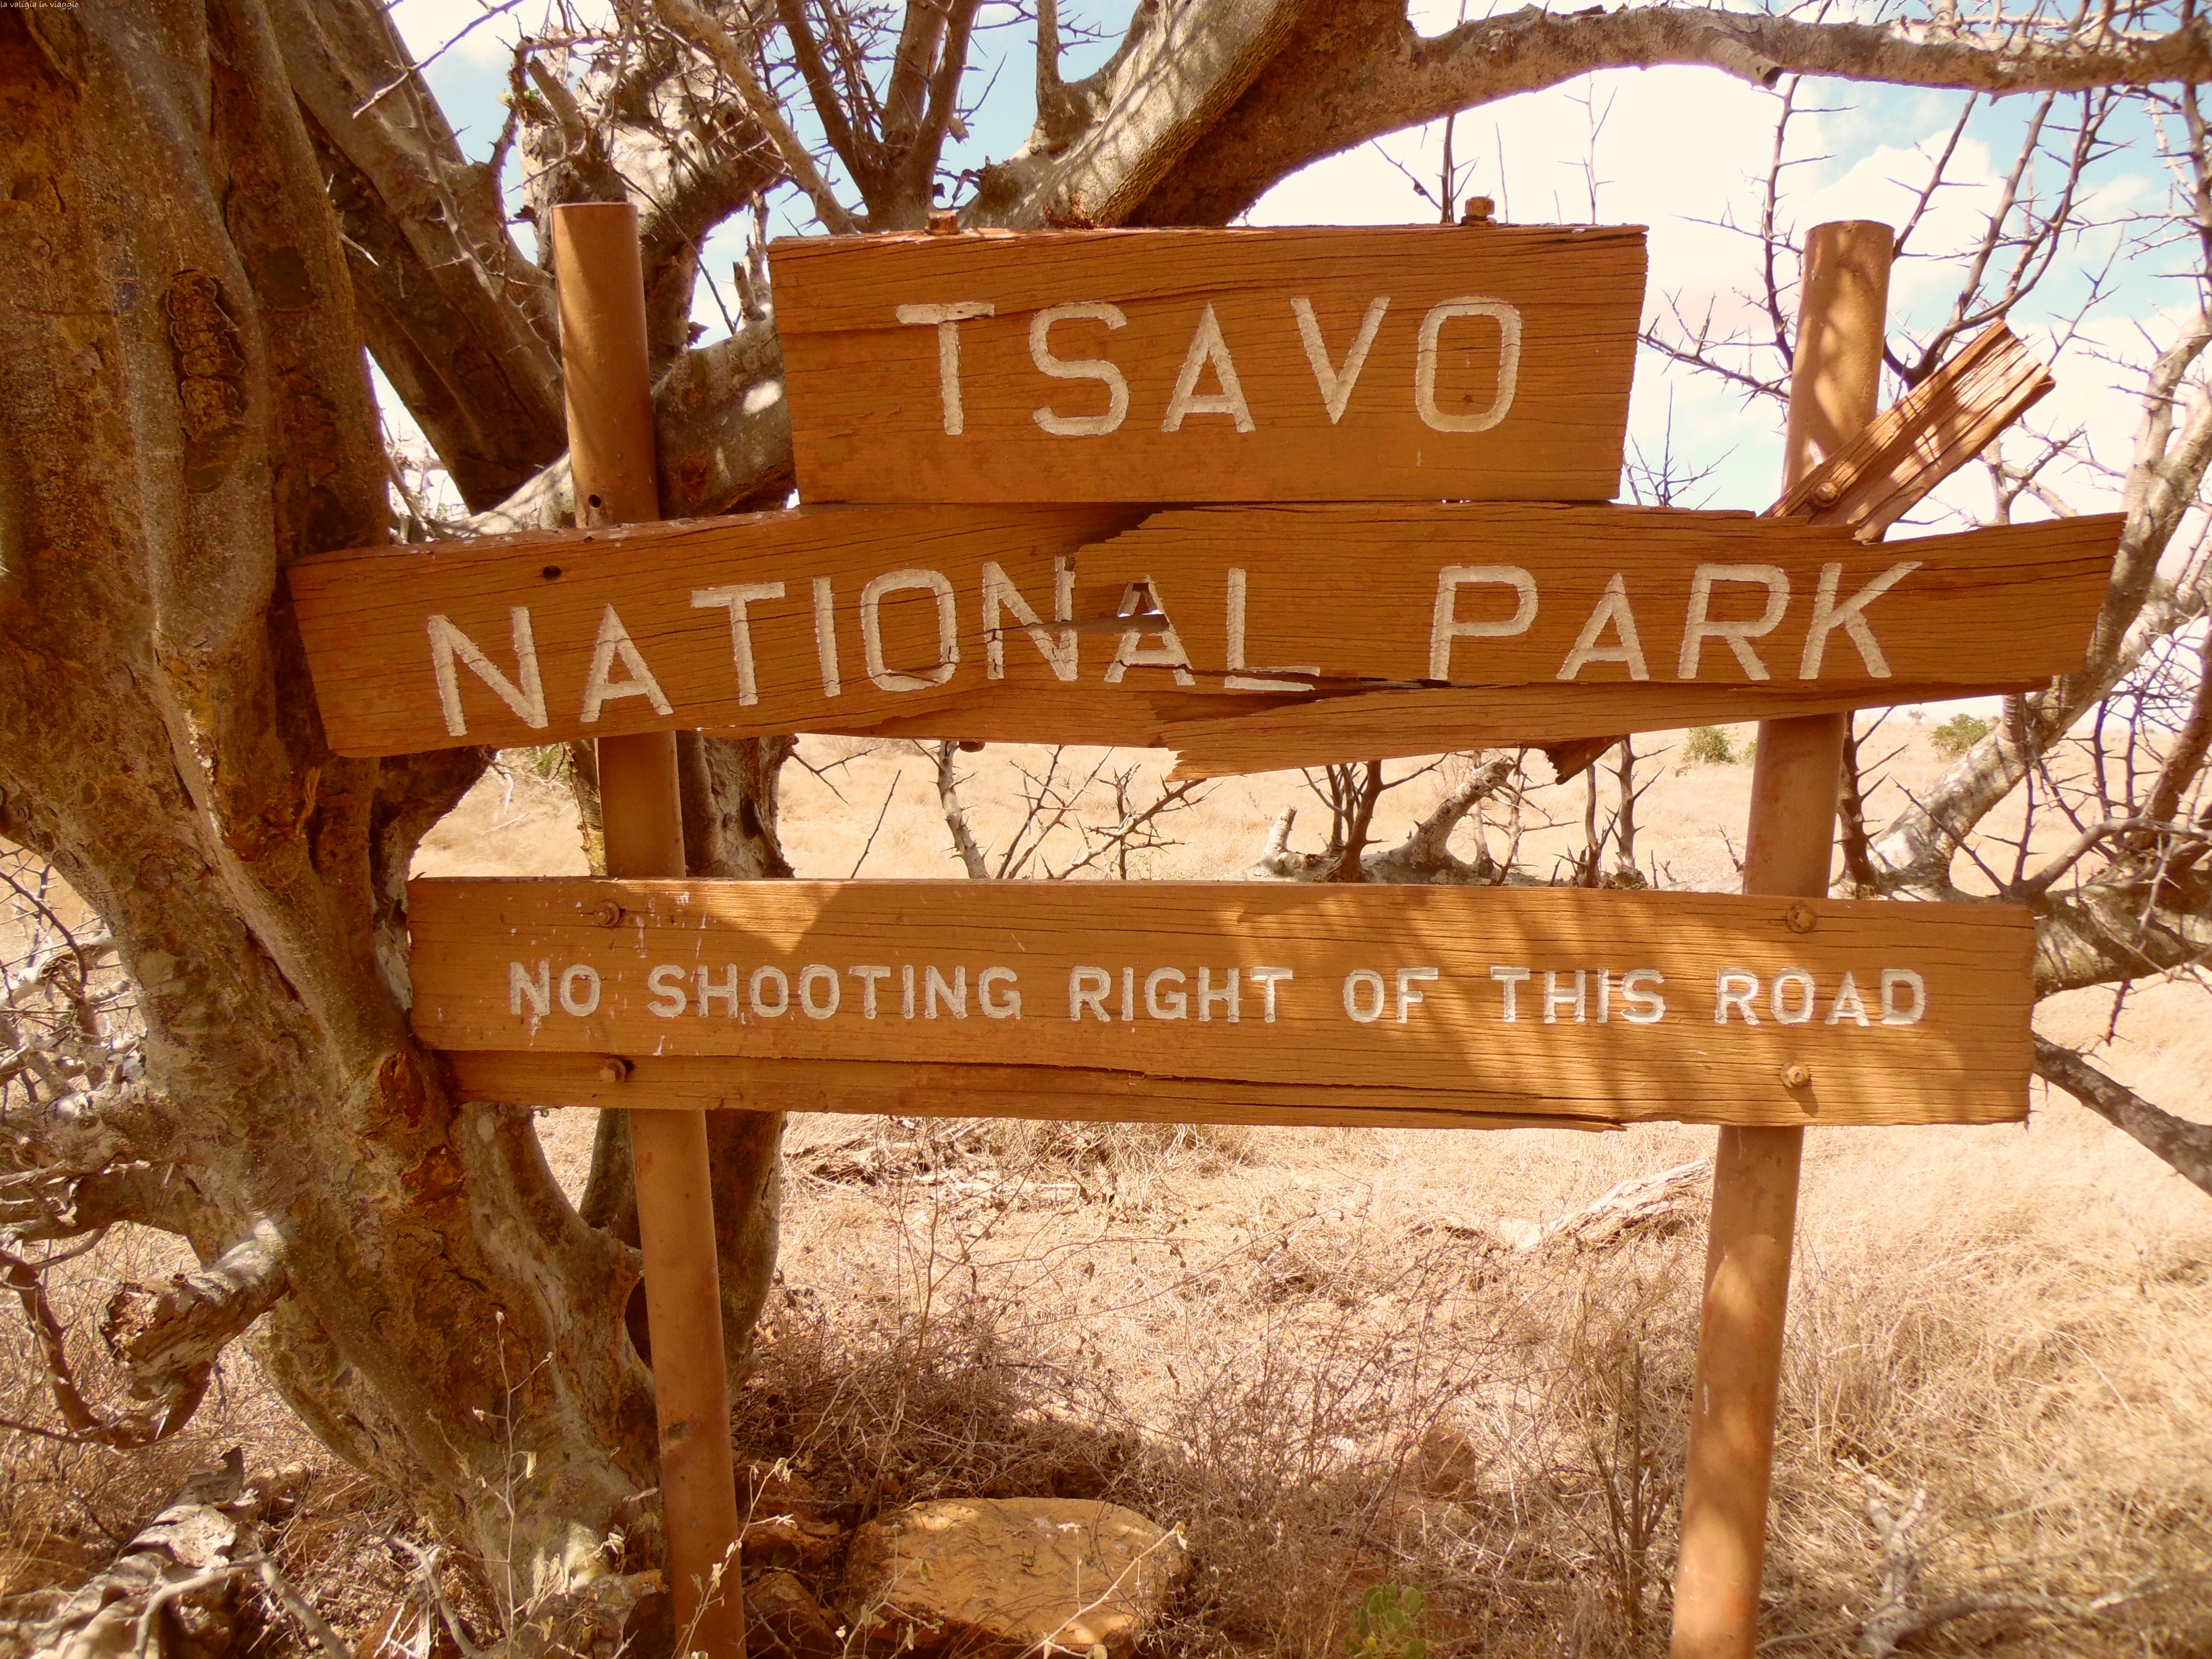 Safari in Kenya, nello Tsavo National Park